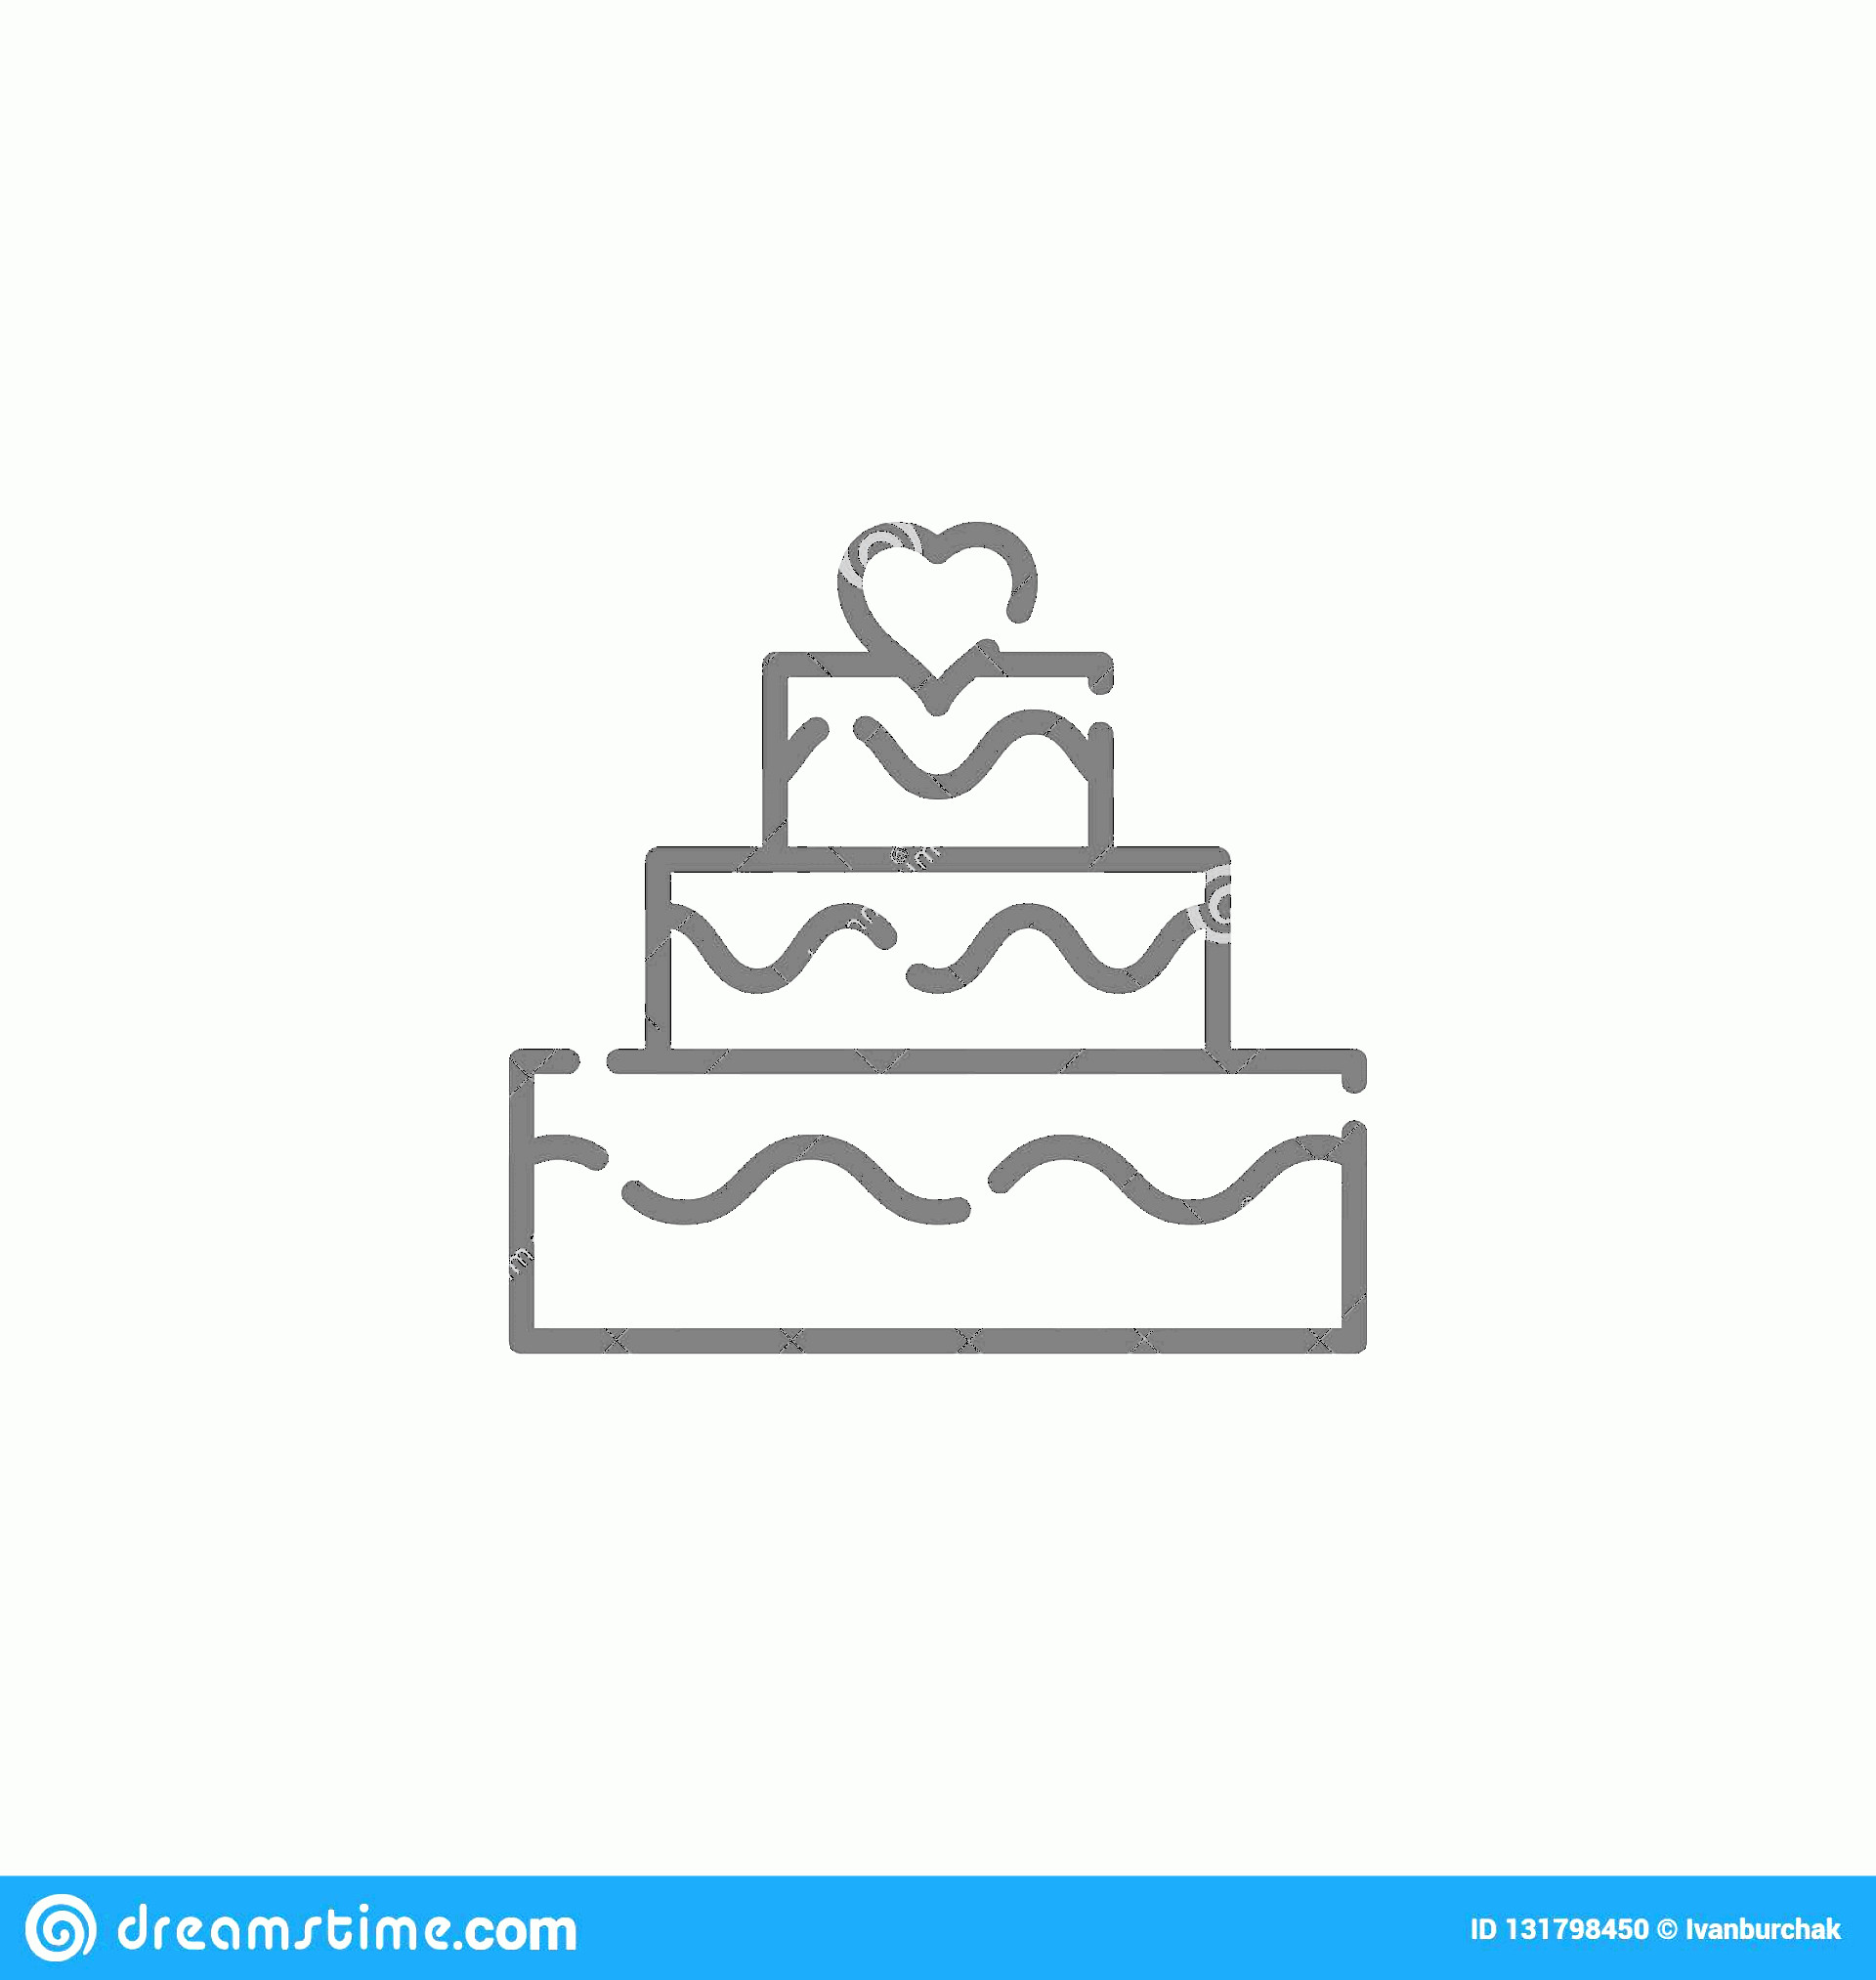 Vector Abstract Art Cake: Wedding Cake Vector Line Icon Symbol Pictogram Sign Light Abstract Geometric Background Editable Stroke Wedding Cake Vector Line Image